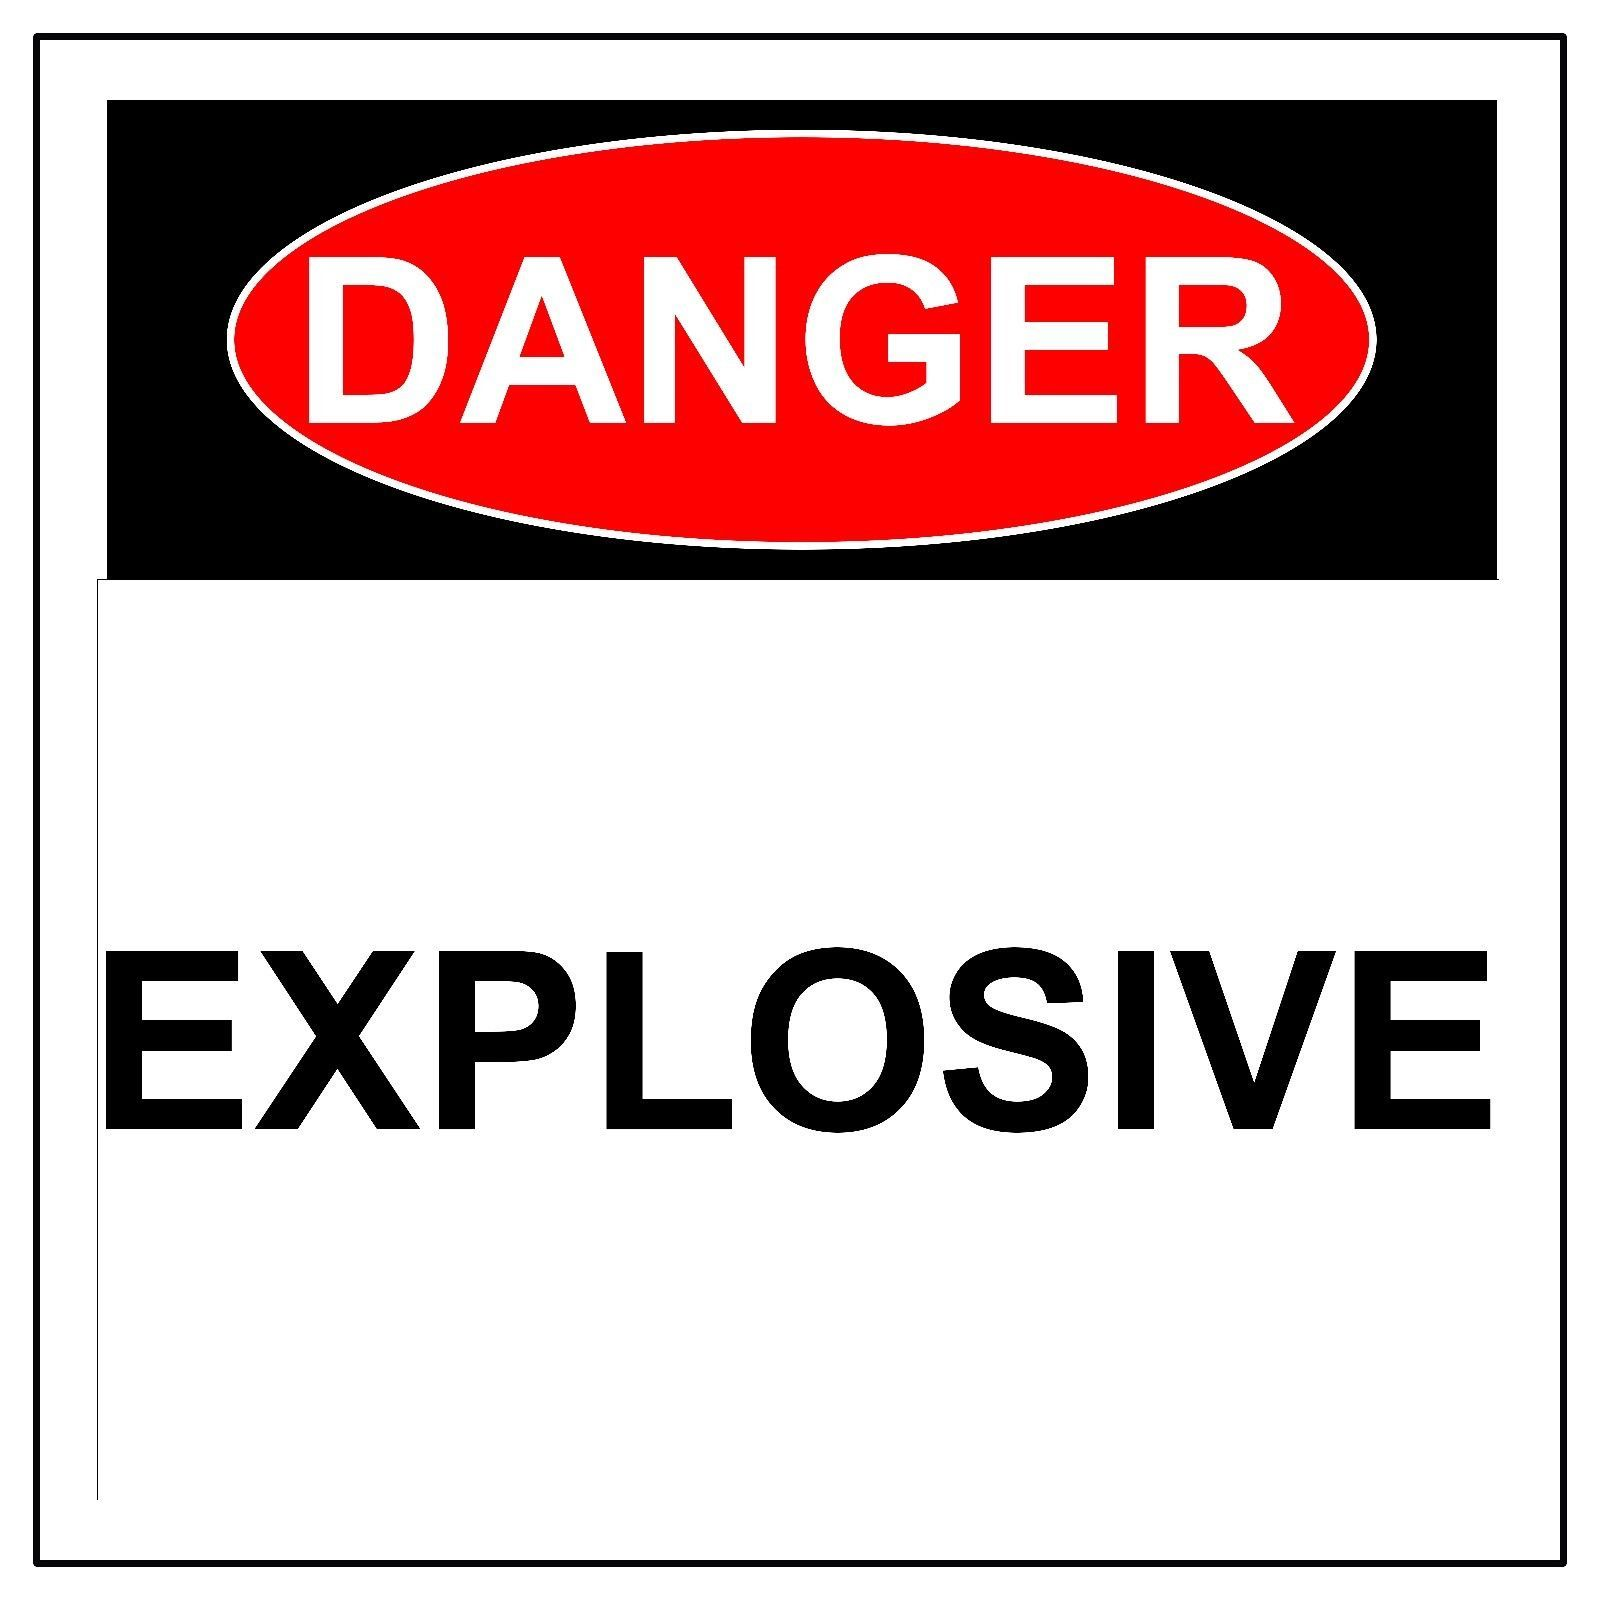 Danger Explosive Sign, Aluminum Metal Health & Safety Warning UV Print Signs